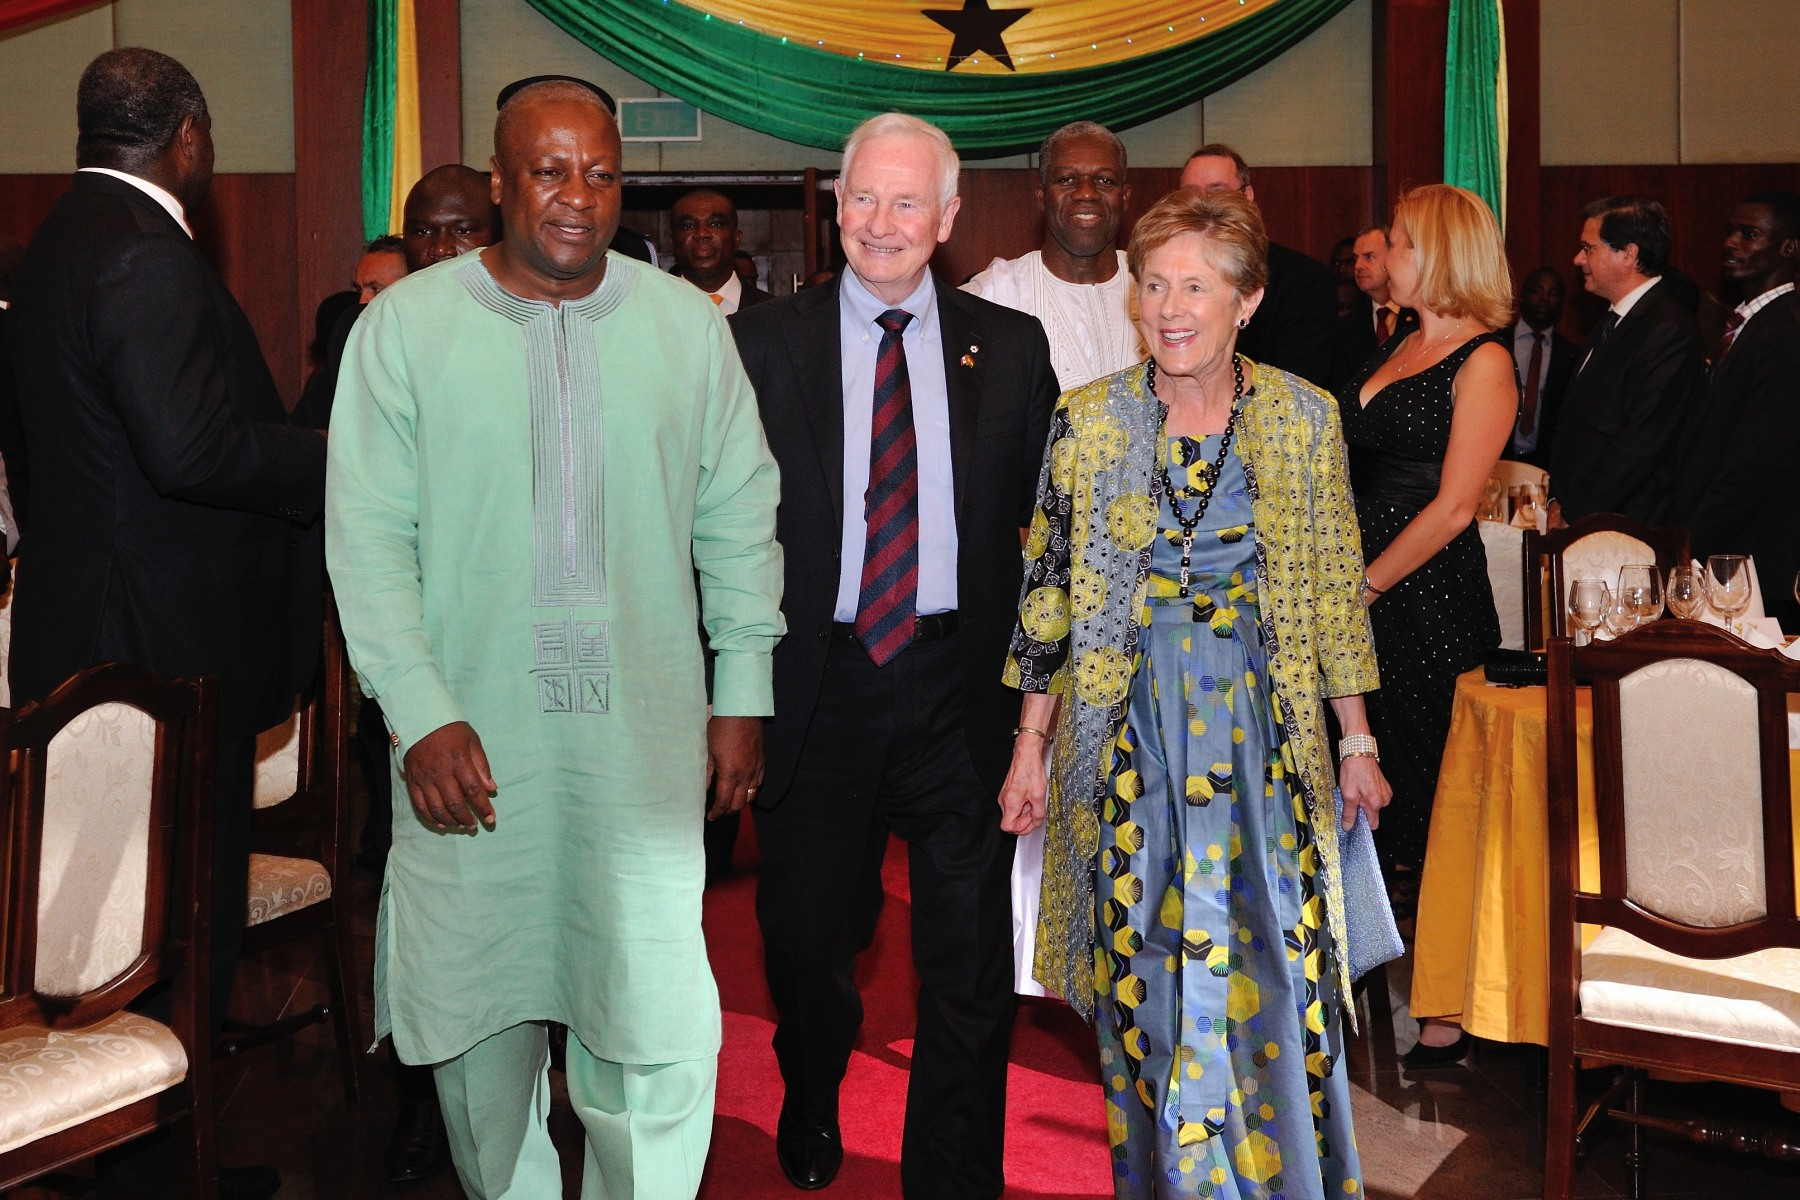 In the evening, Their Excellencies attended a State dinner hosted by the President of the Republic of Ghana.